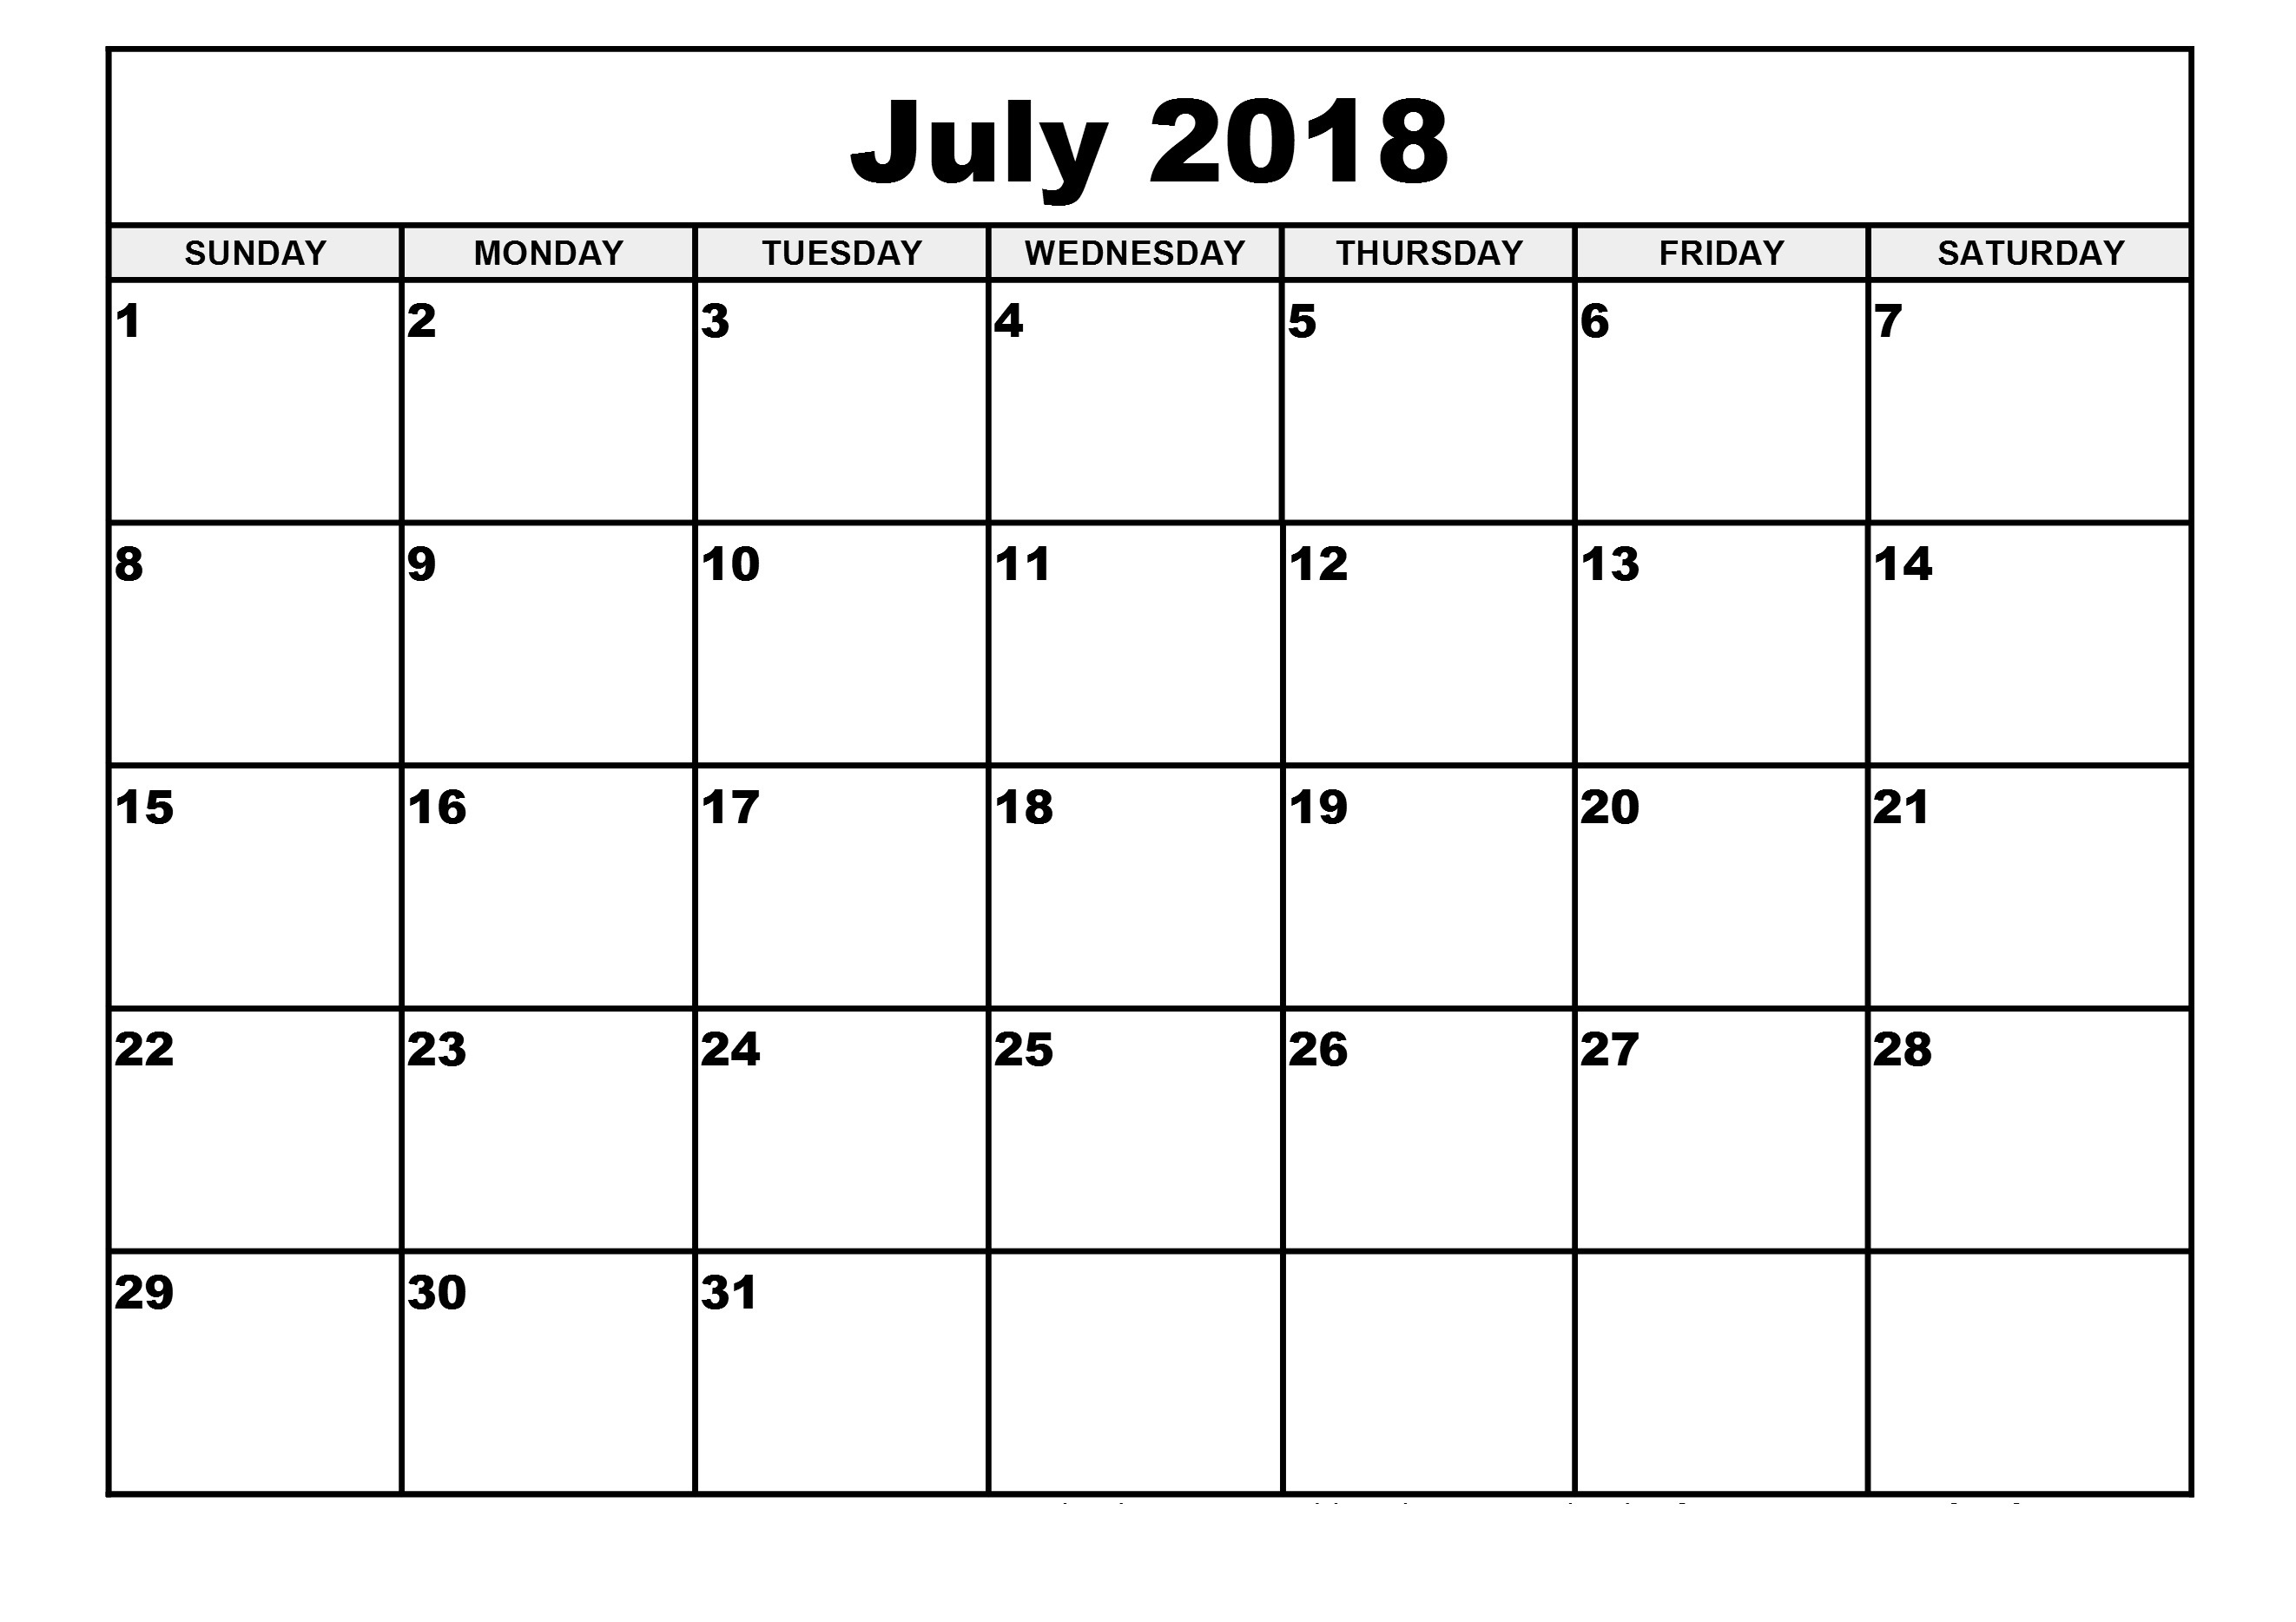 July Calendar 2018 Monthly Desk Template